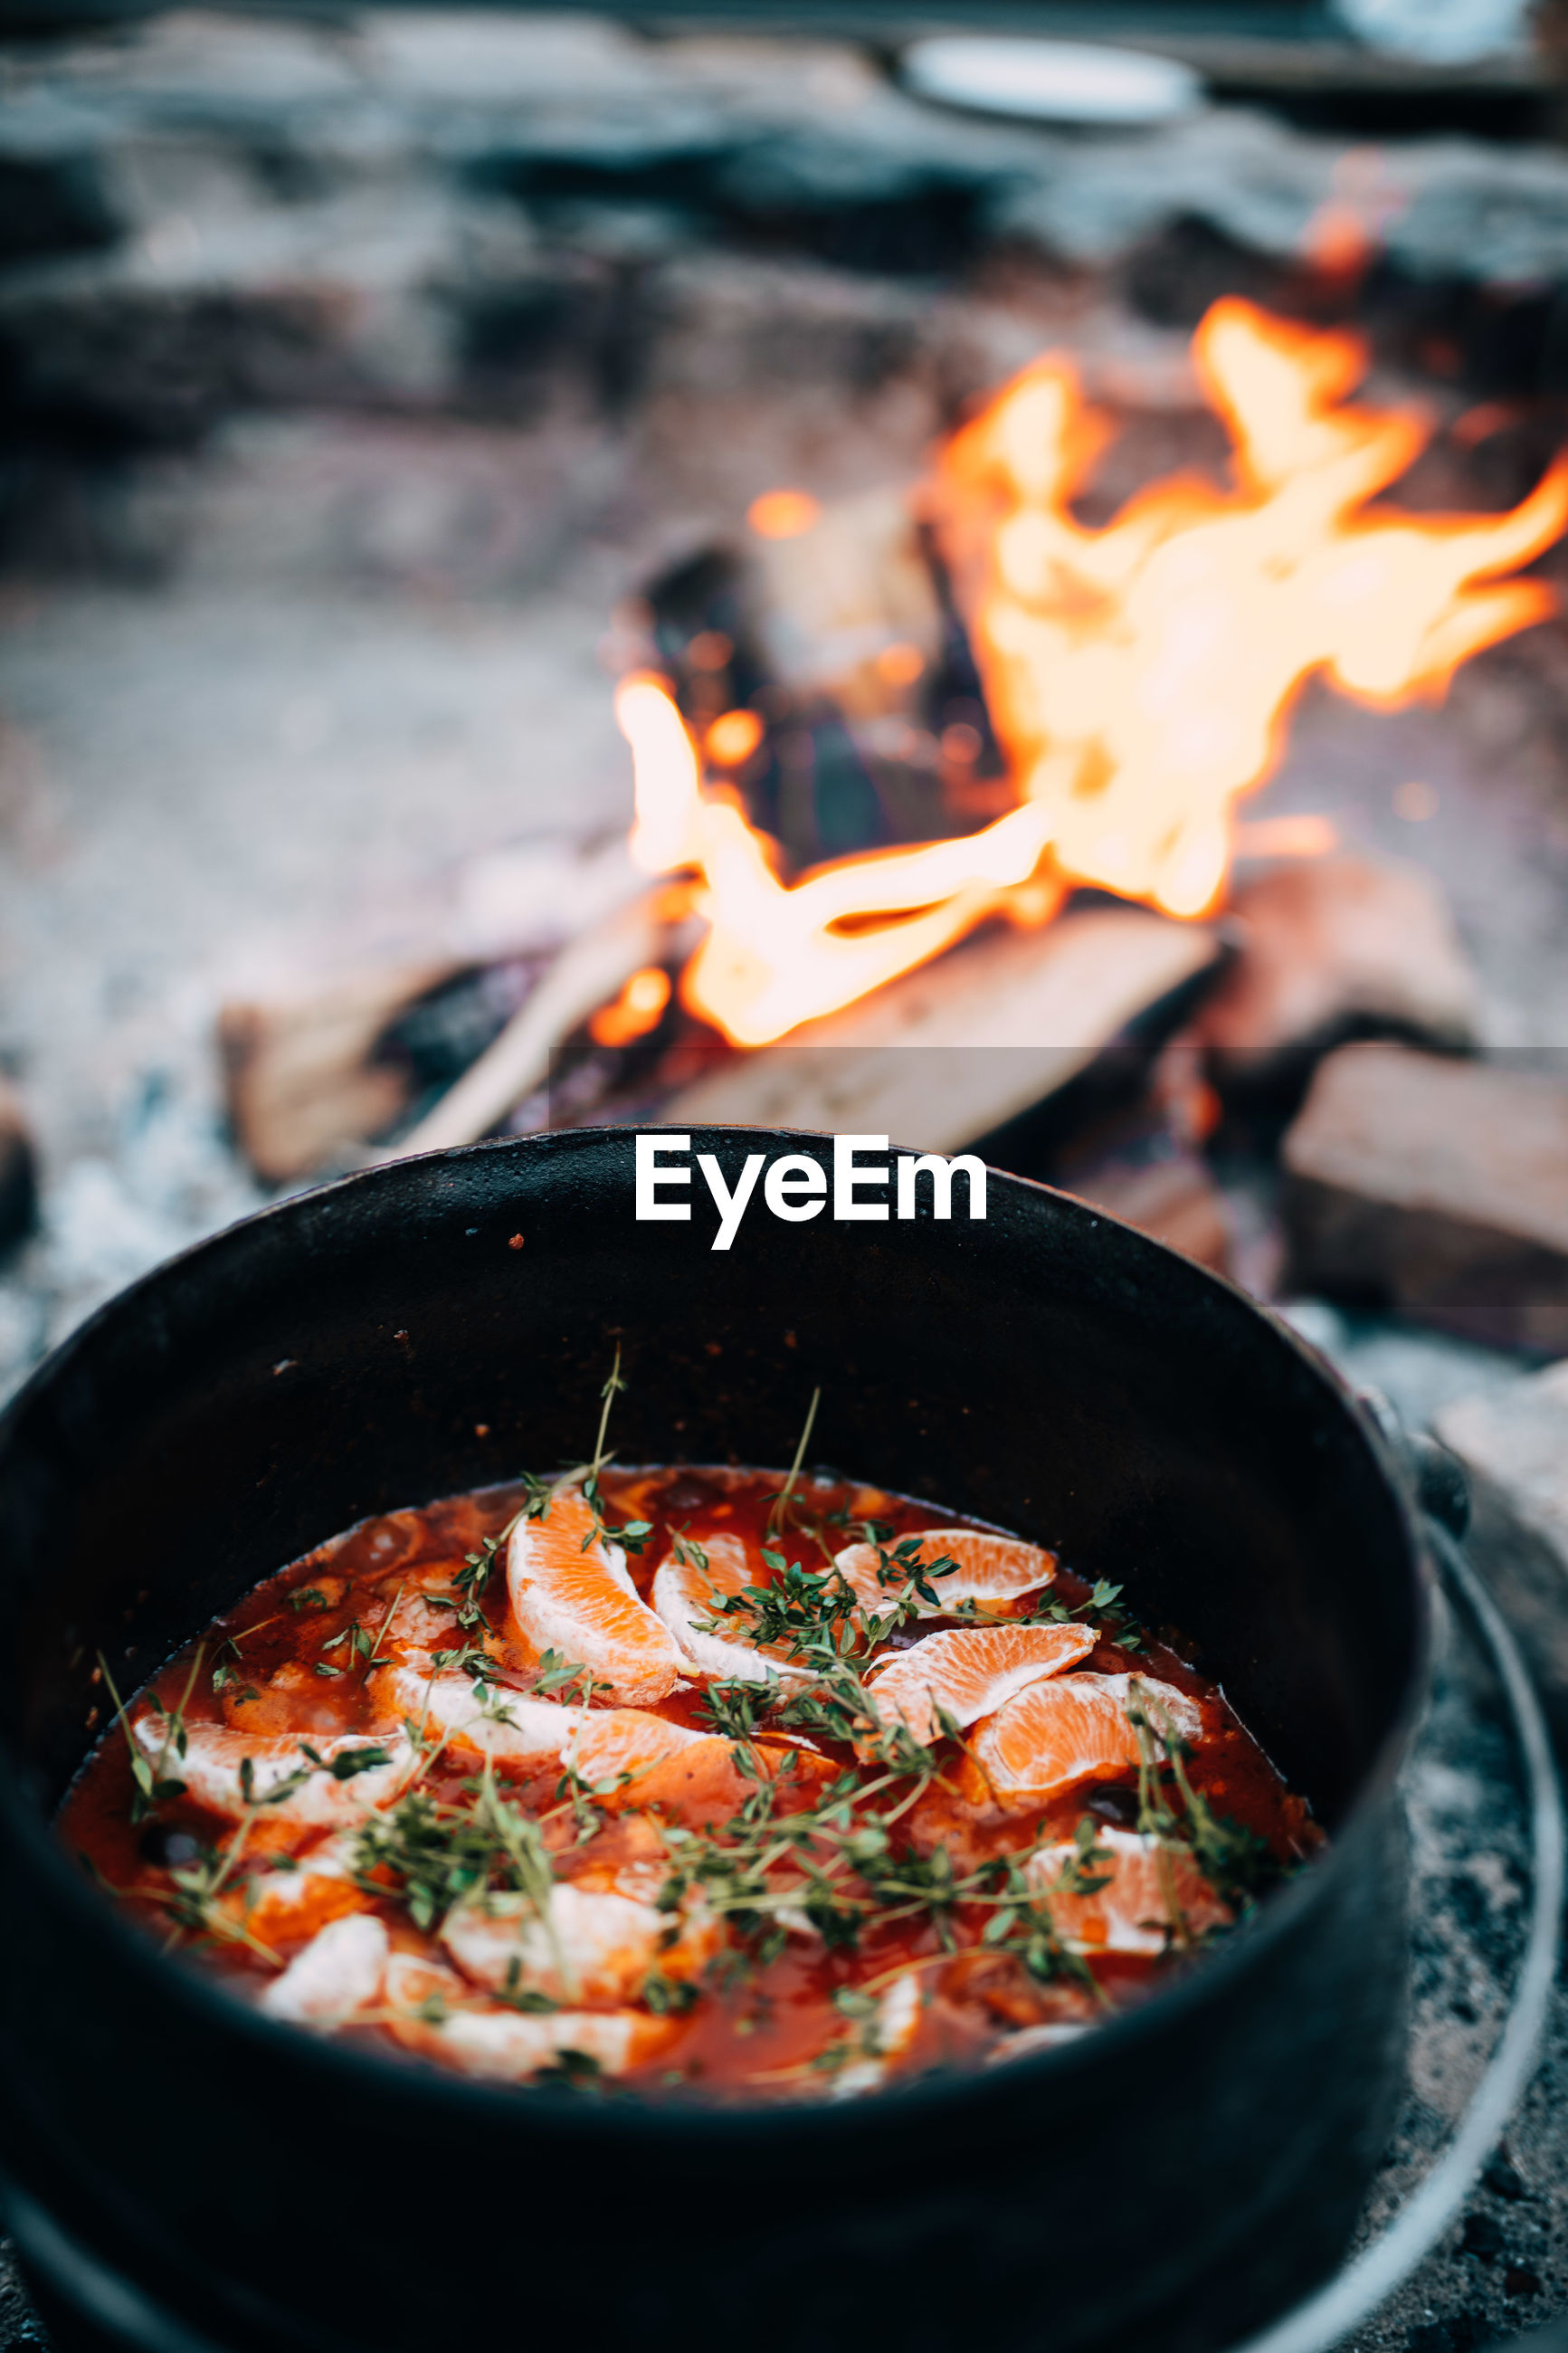 High angle view of food in container by campfire